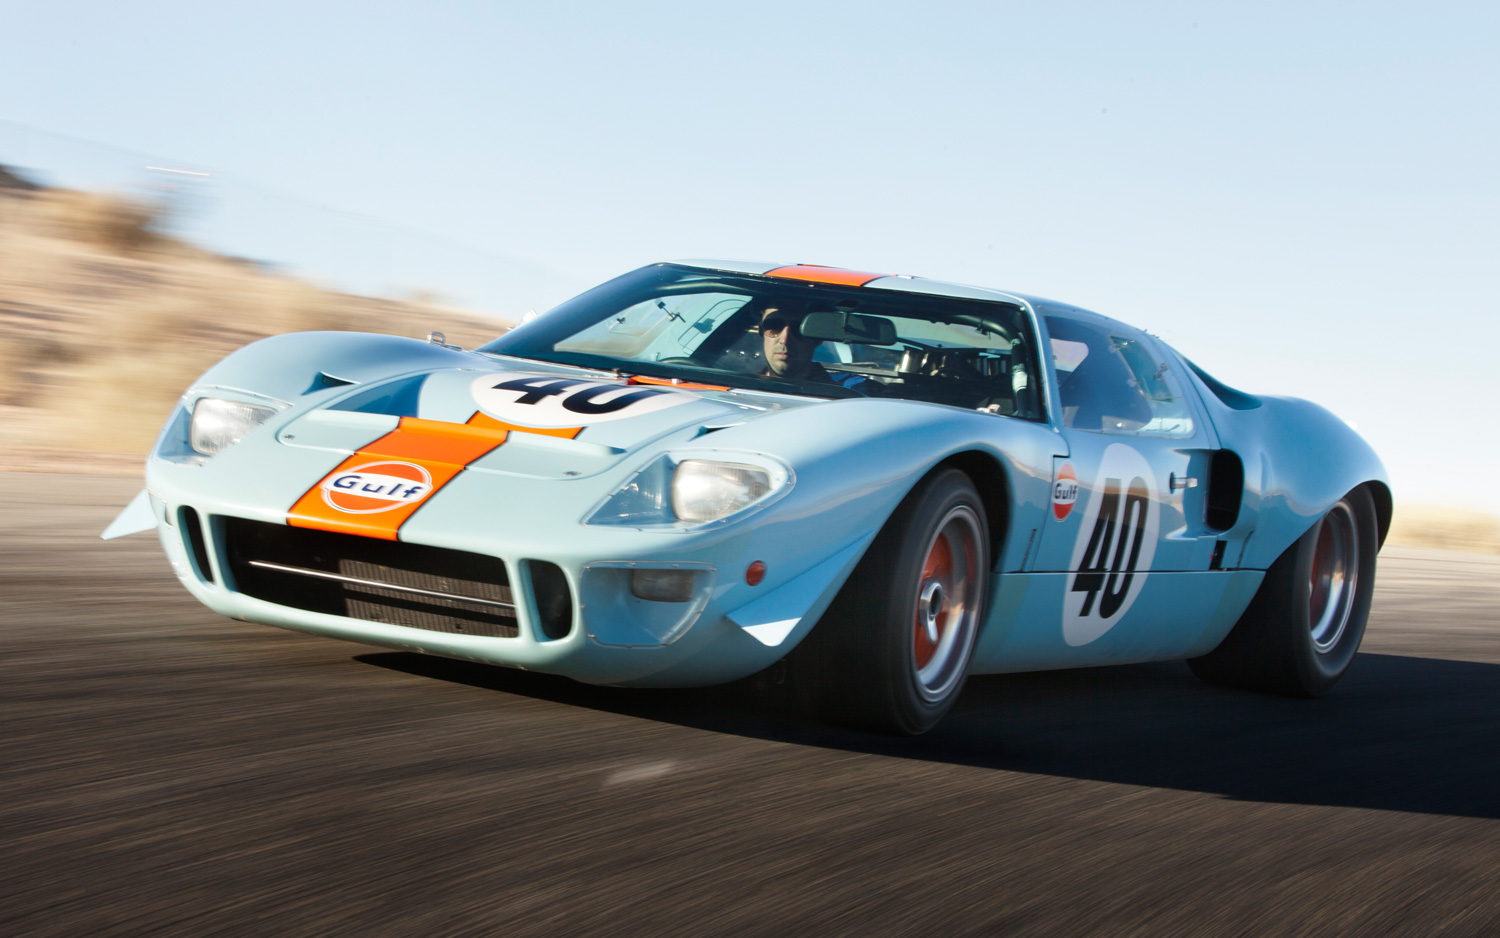 medium resolution of ford gt40 le mans race car sets auction record at 11 million